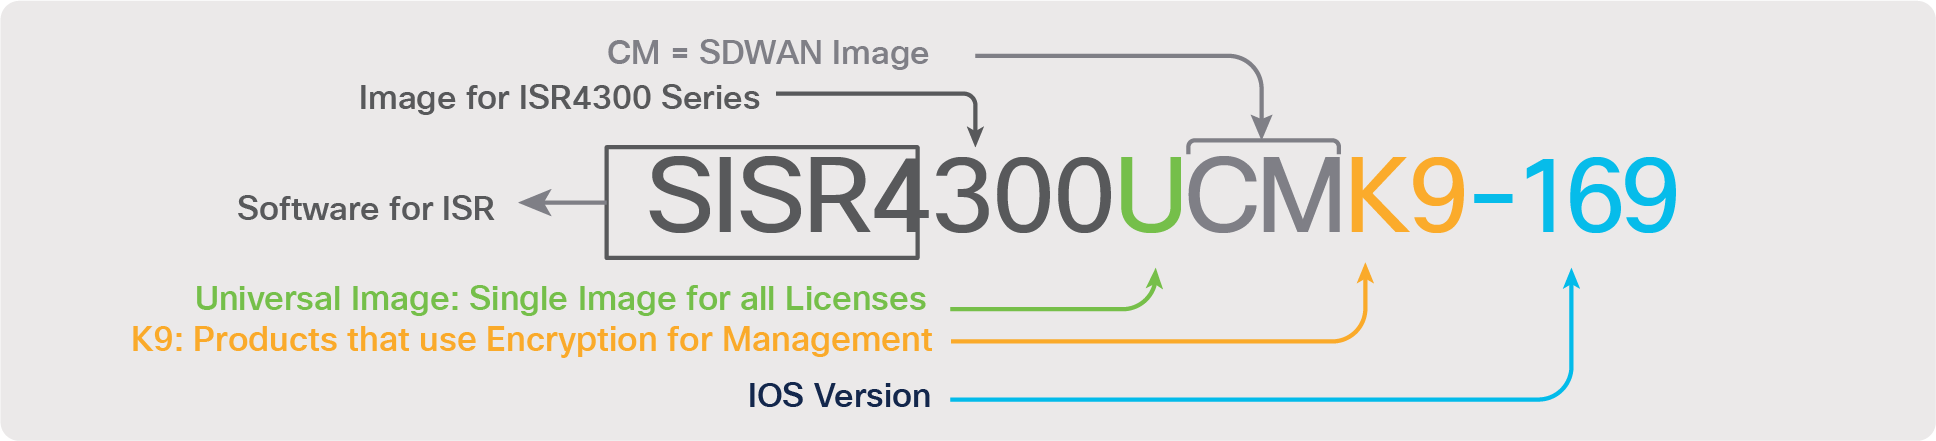 Products Cisco Dna Software For Sd Wan And Routing Ordering Guide Cisco